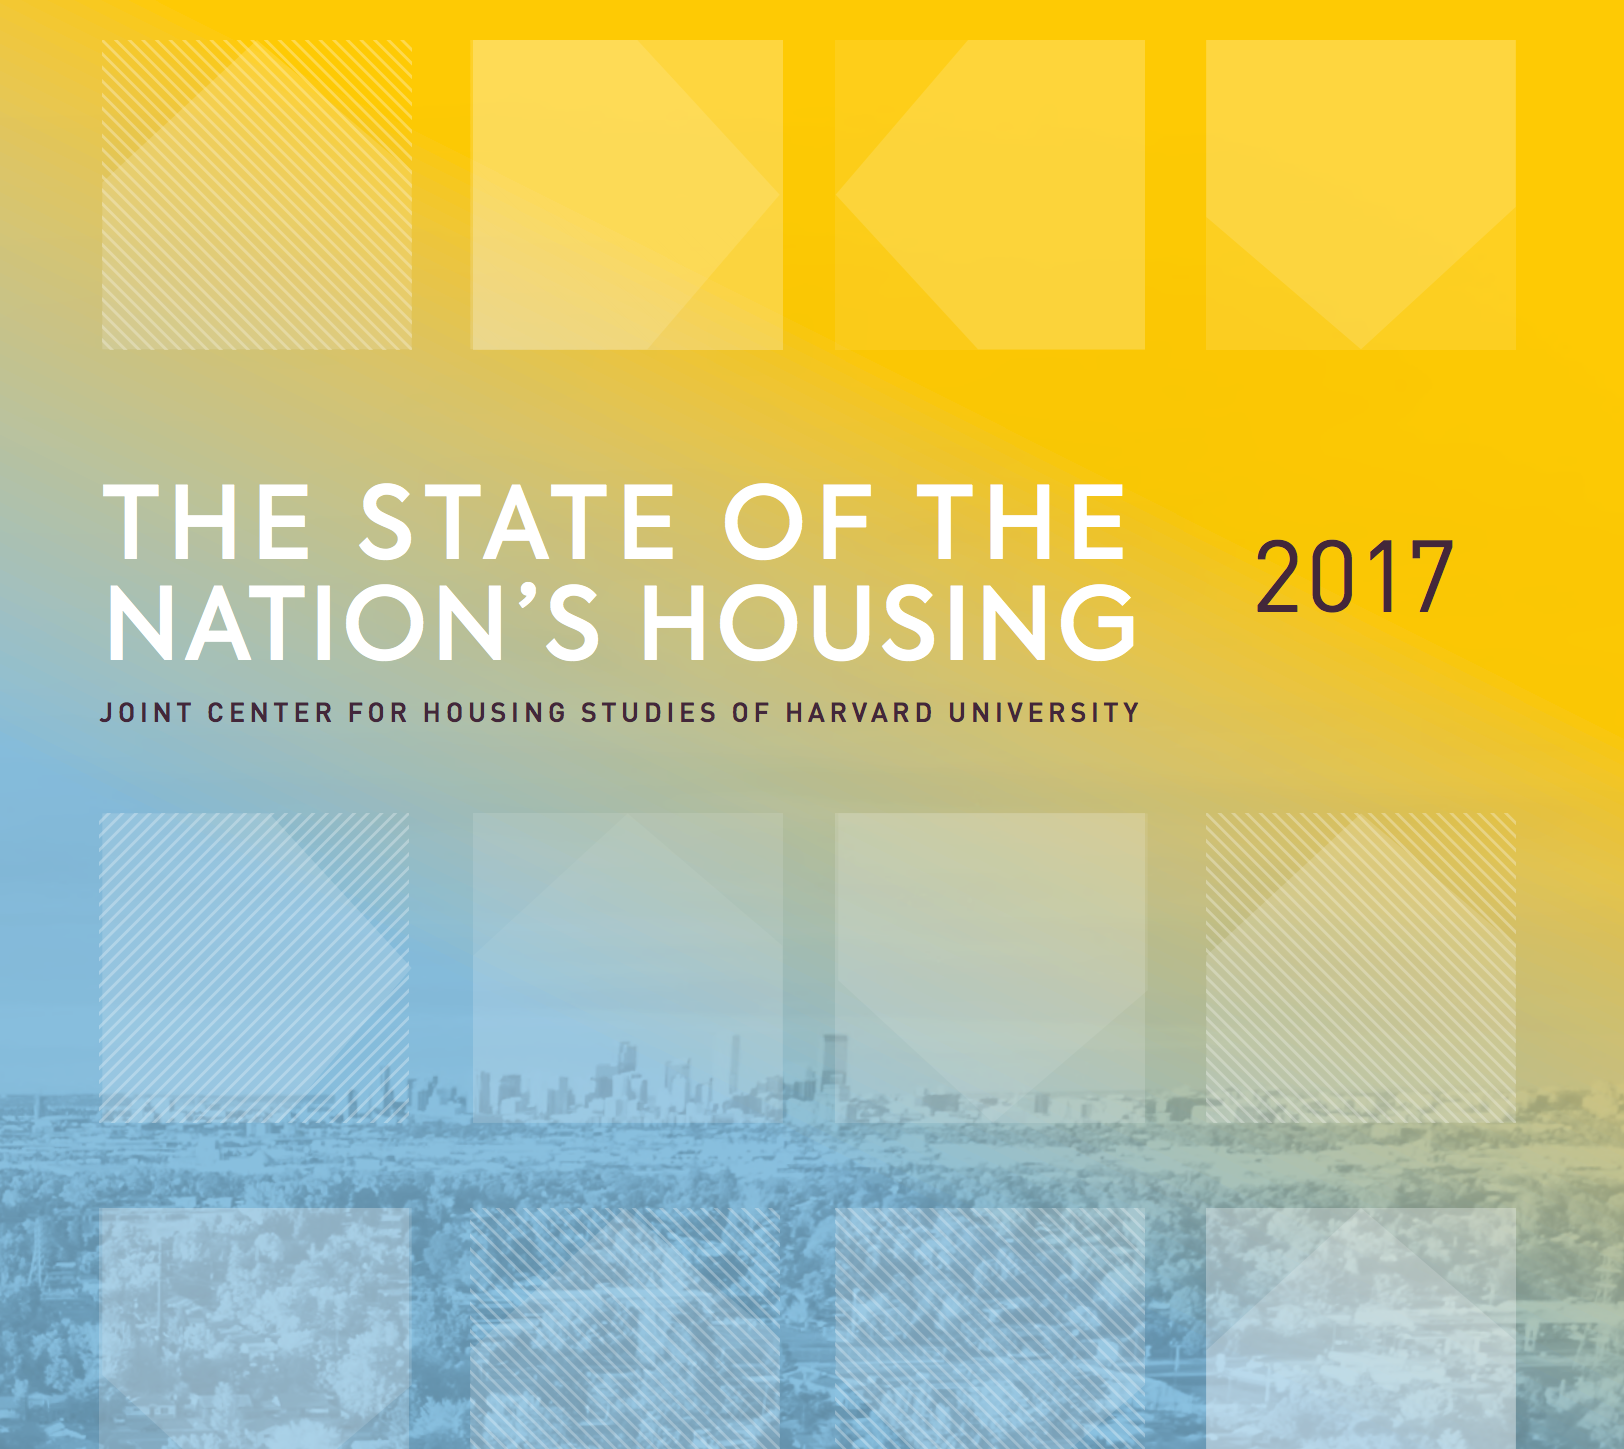 Harvard 2017 Us Housing Study Cover Page Higher Rez Tn